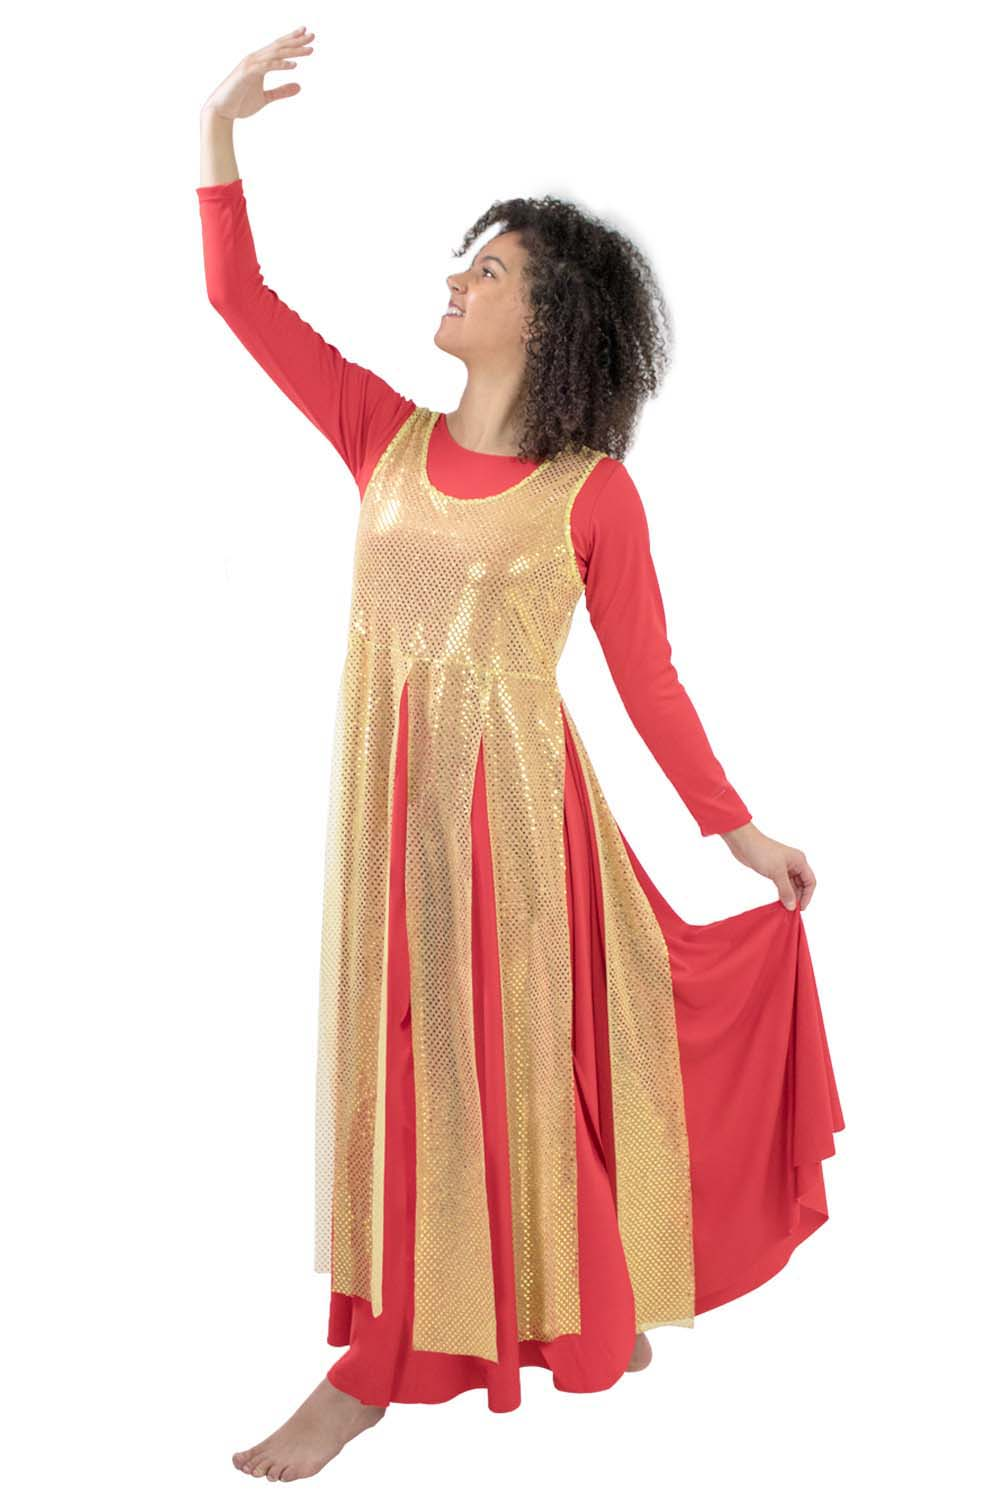 Adult Liturgical Sequin Tunic with Streamer Skirt